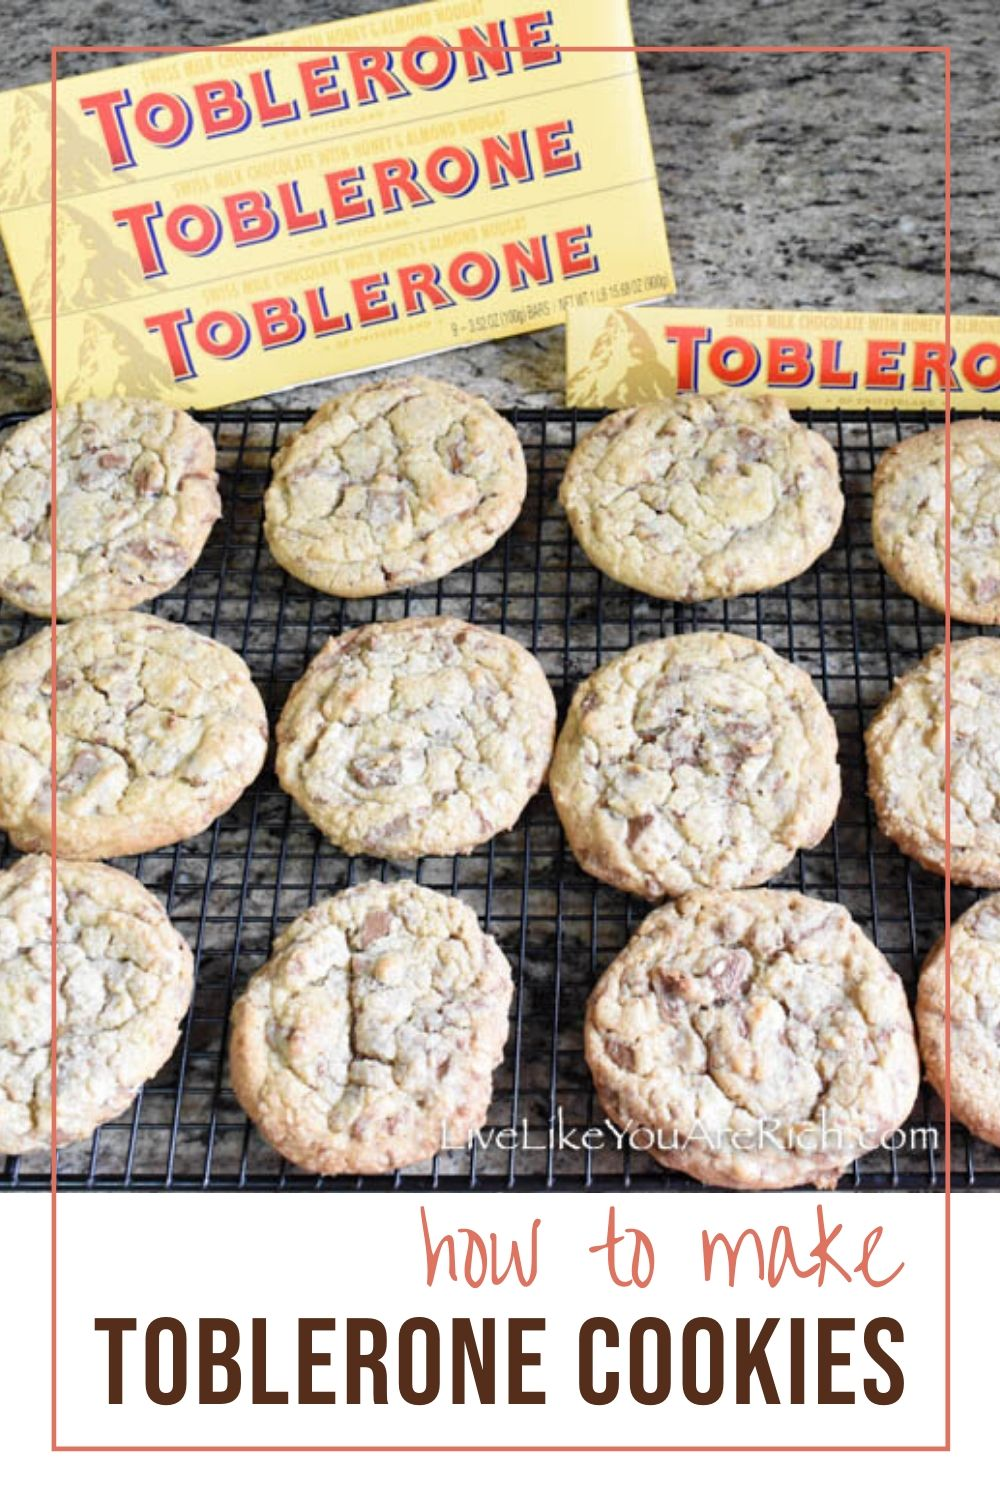 I had the idea to try the Swiss Toblerone chocolate in cookies. I wasn't sure how the nougat bits would taste or if they would melt or stay intact. After giving it a try, I was super glad I did. The little nougat pieces add the tiniest bit of crunch. They taste amazing! #tobleronecookies #cookies #dessert